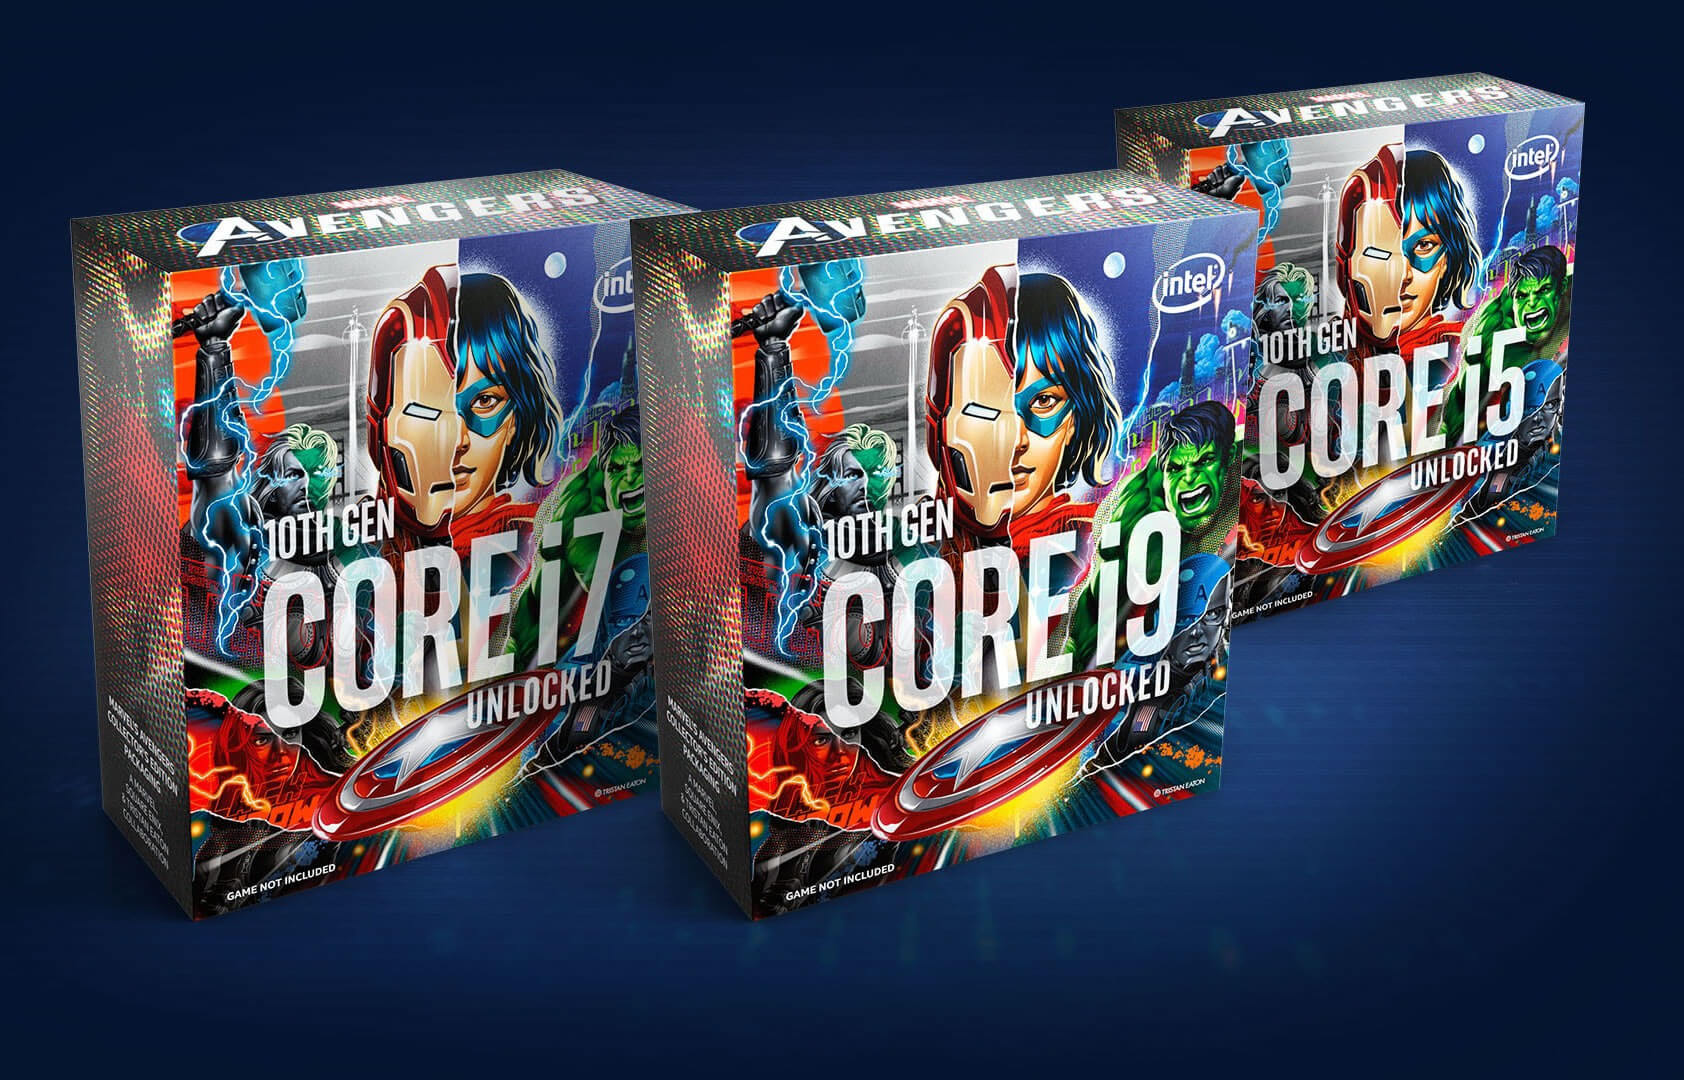 Intel confirms Marvel's Avengers Collector's Edition CPUs: cool packaging, but no game (updated)